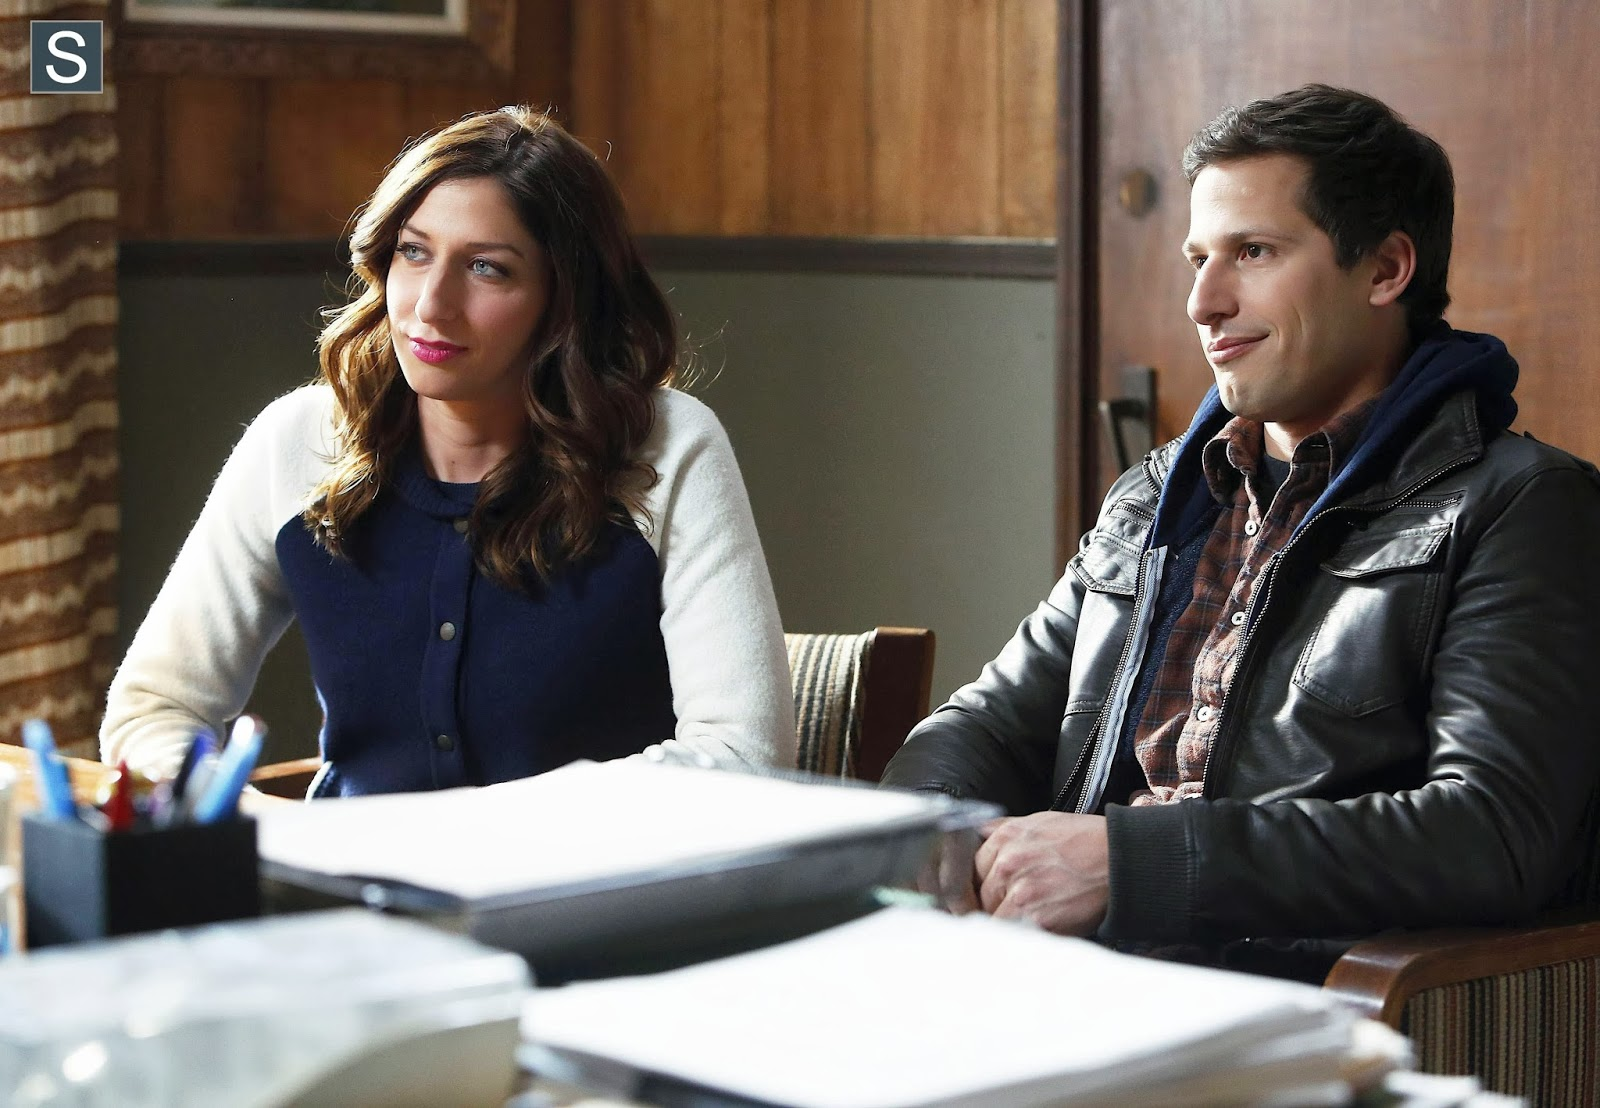 Brooklyn Nine-Nine - Episode 1.18 - The Apartment - Review